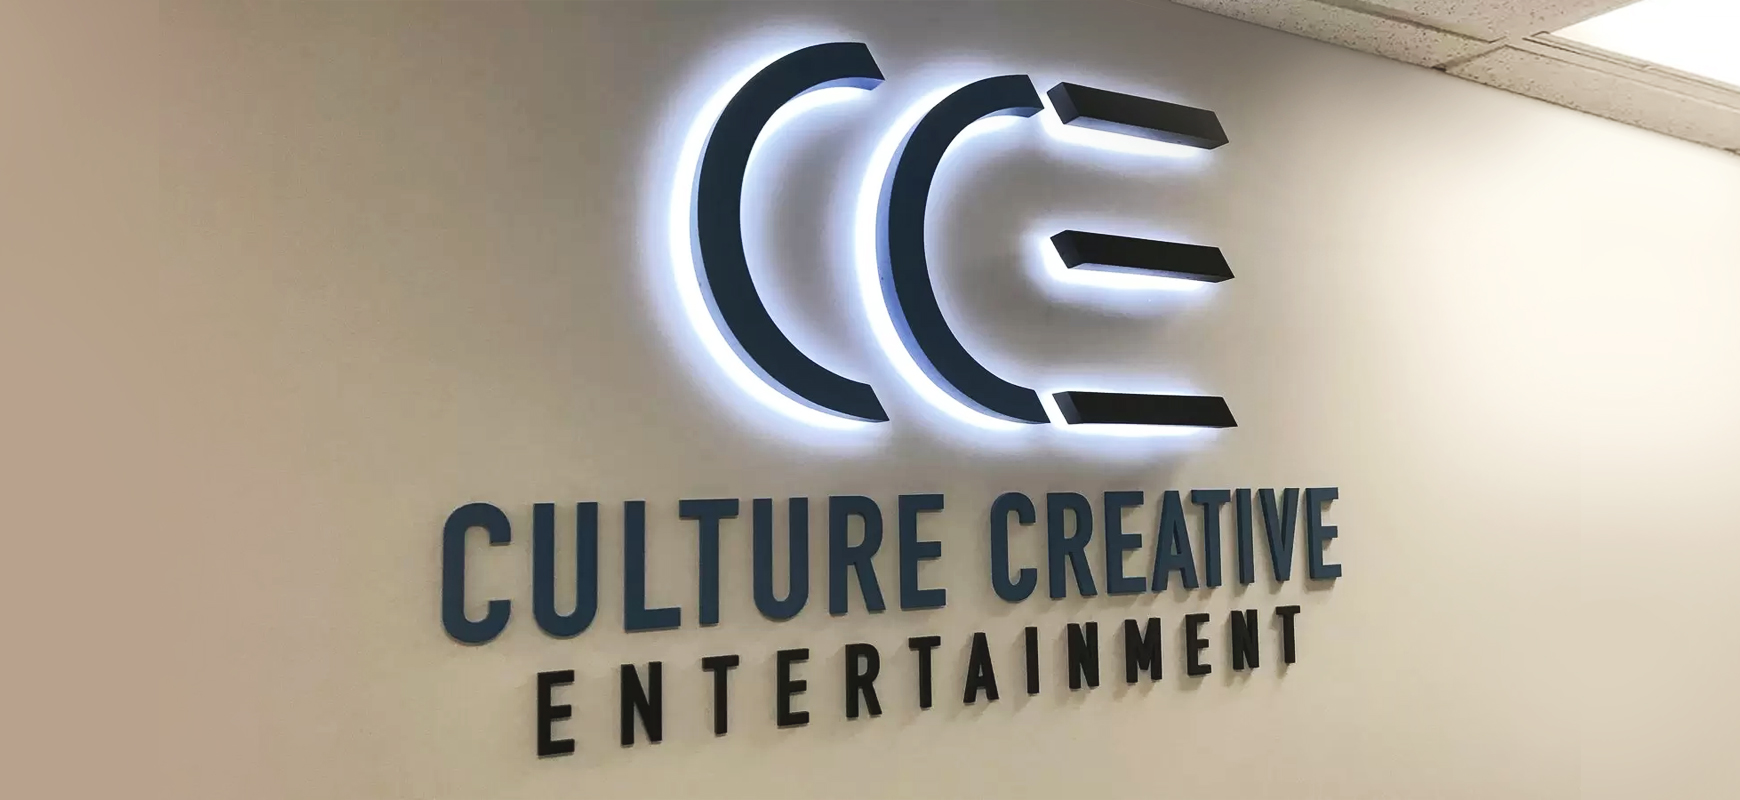 Culture Creative Entertainment 3D branding office sign made of aluminum and acrylic